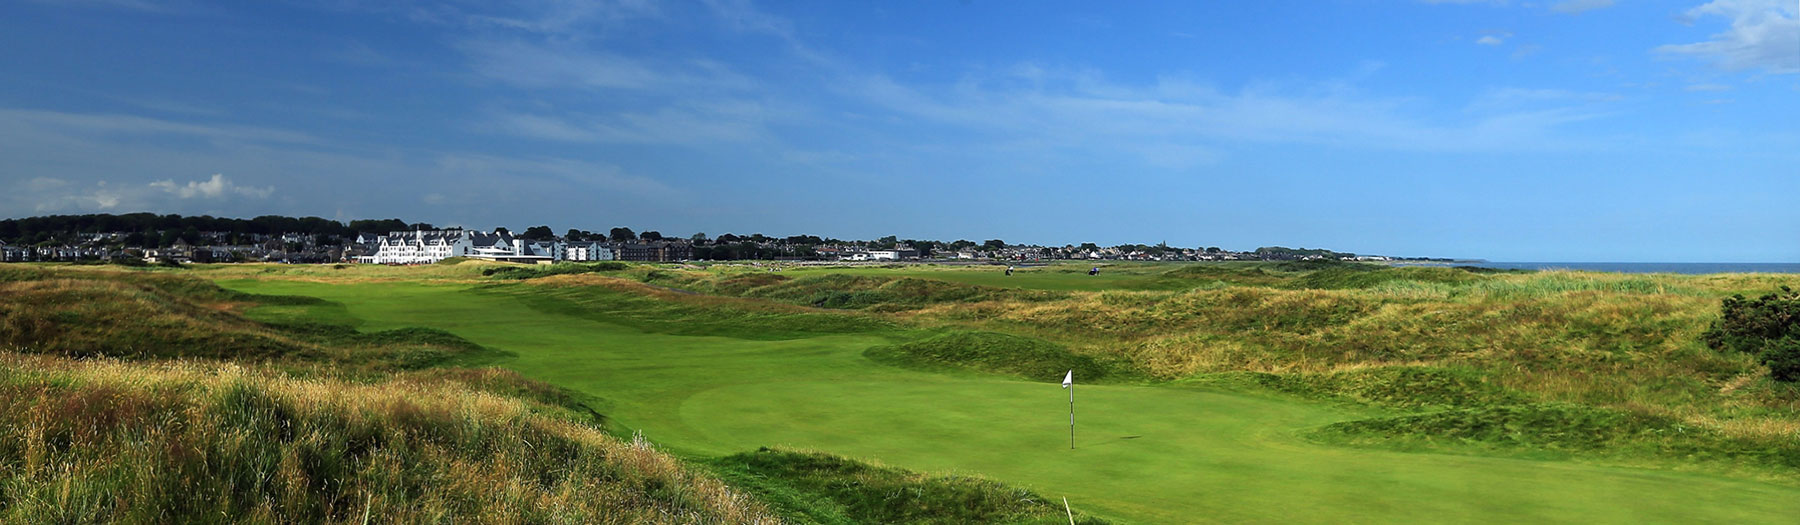 View of Carnoustie Golf Links